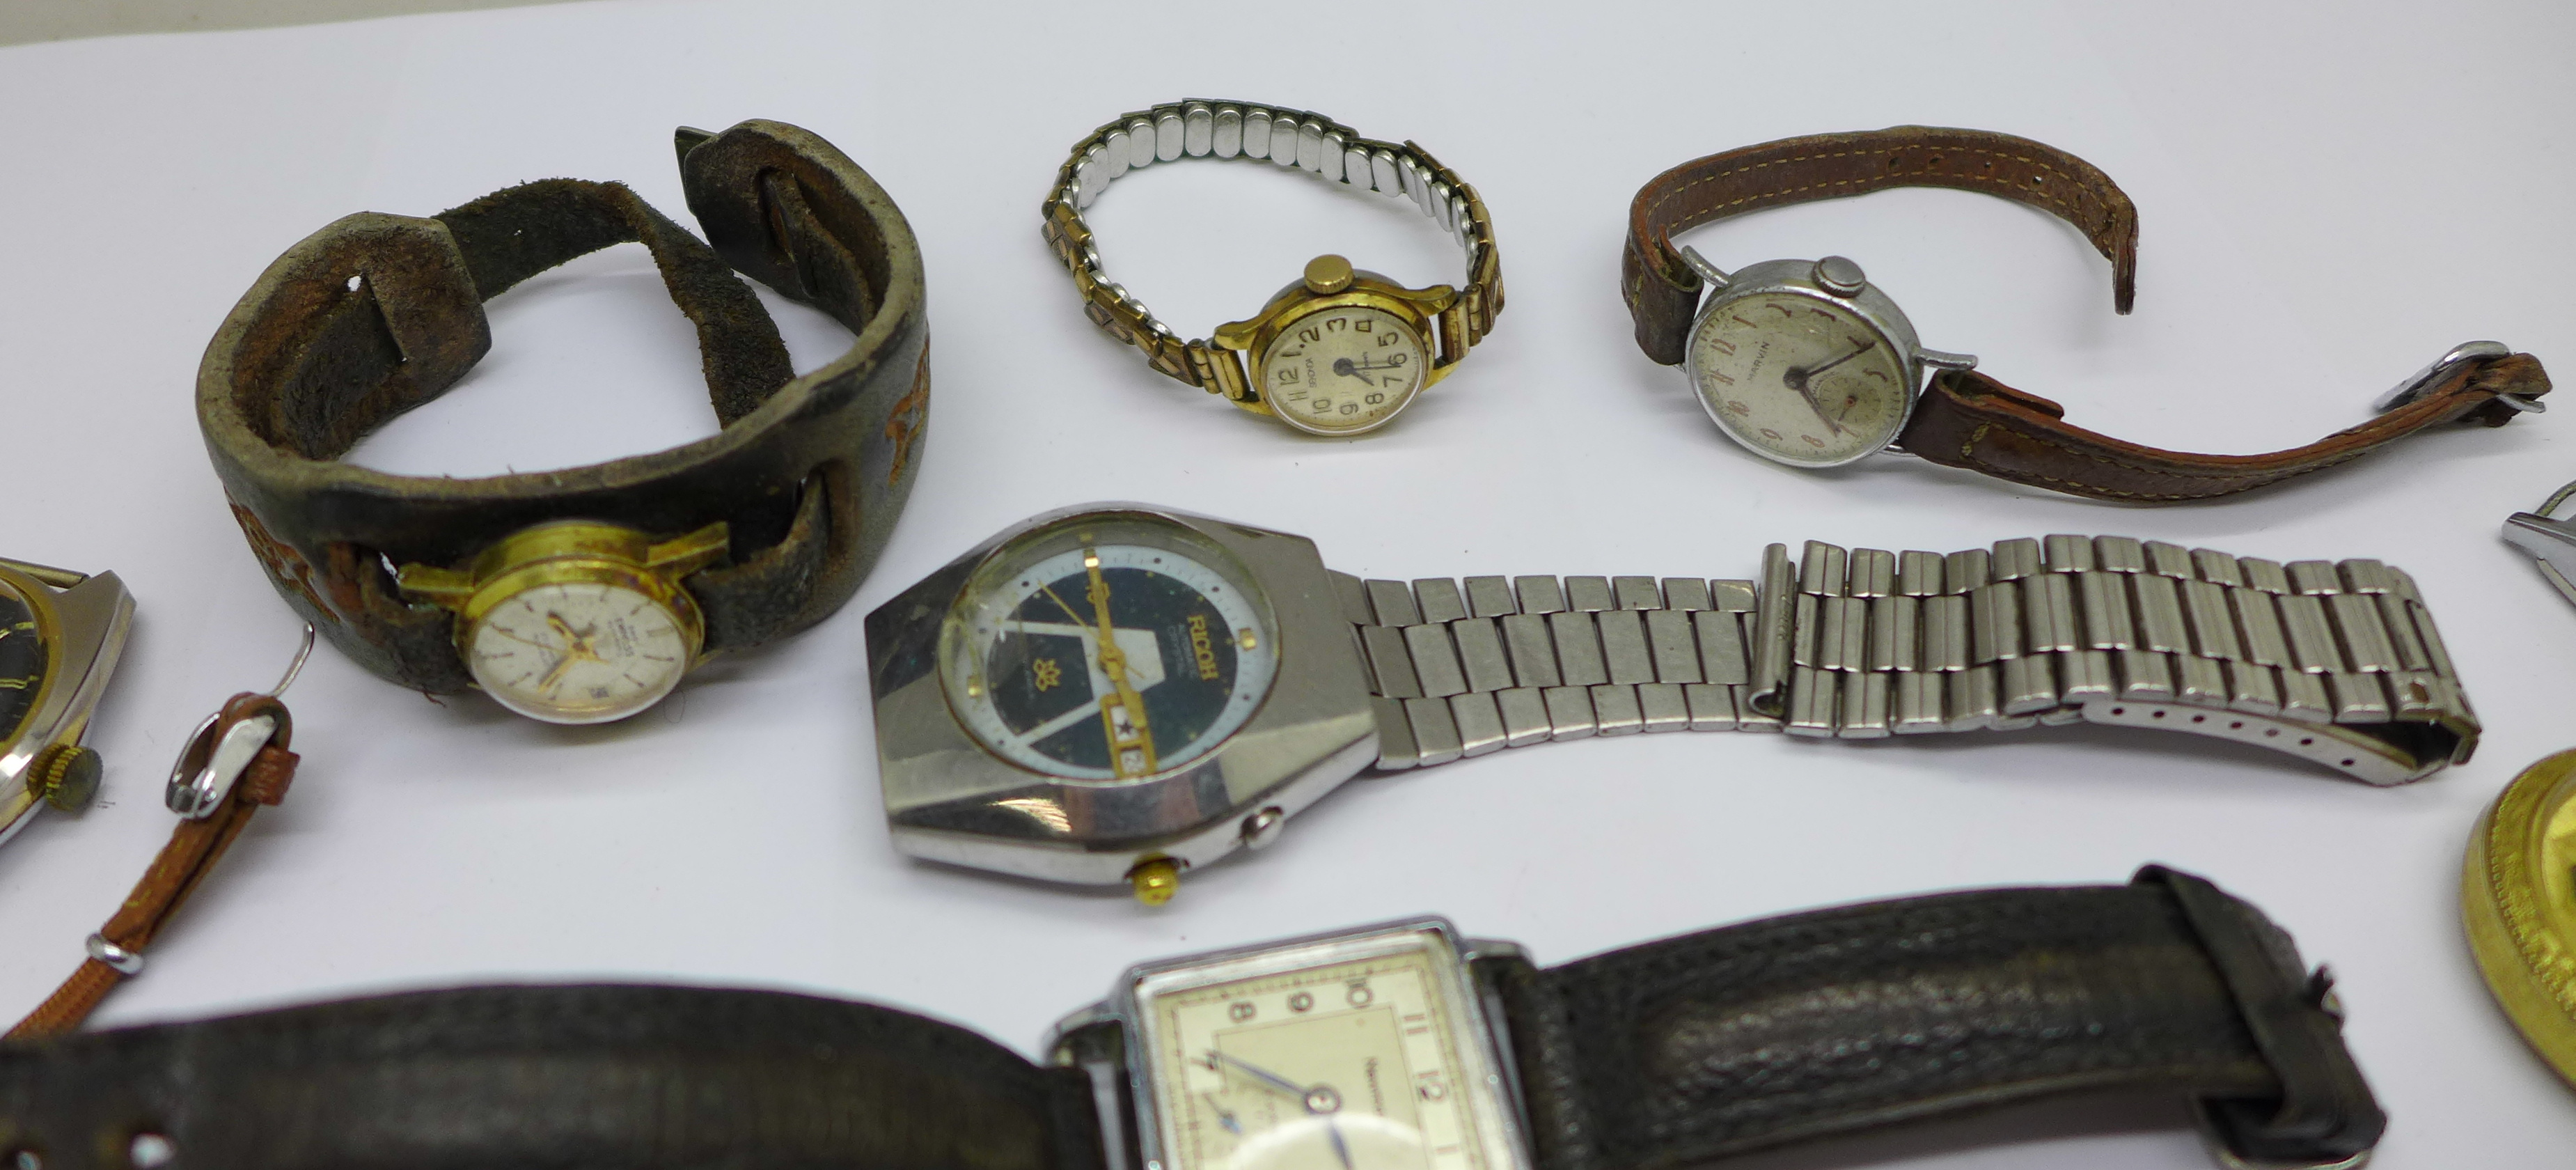 Mechanical wristwatches, a/f - Image 5 of 6